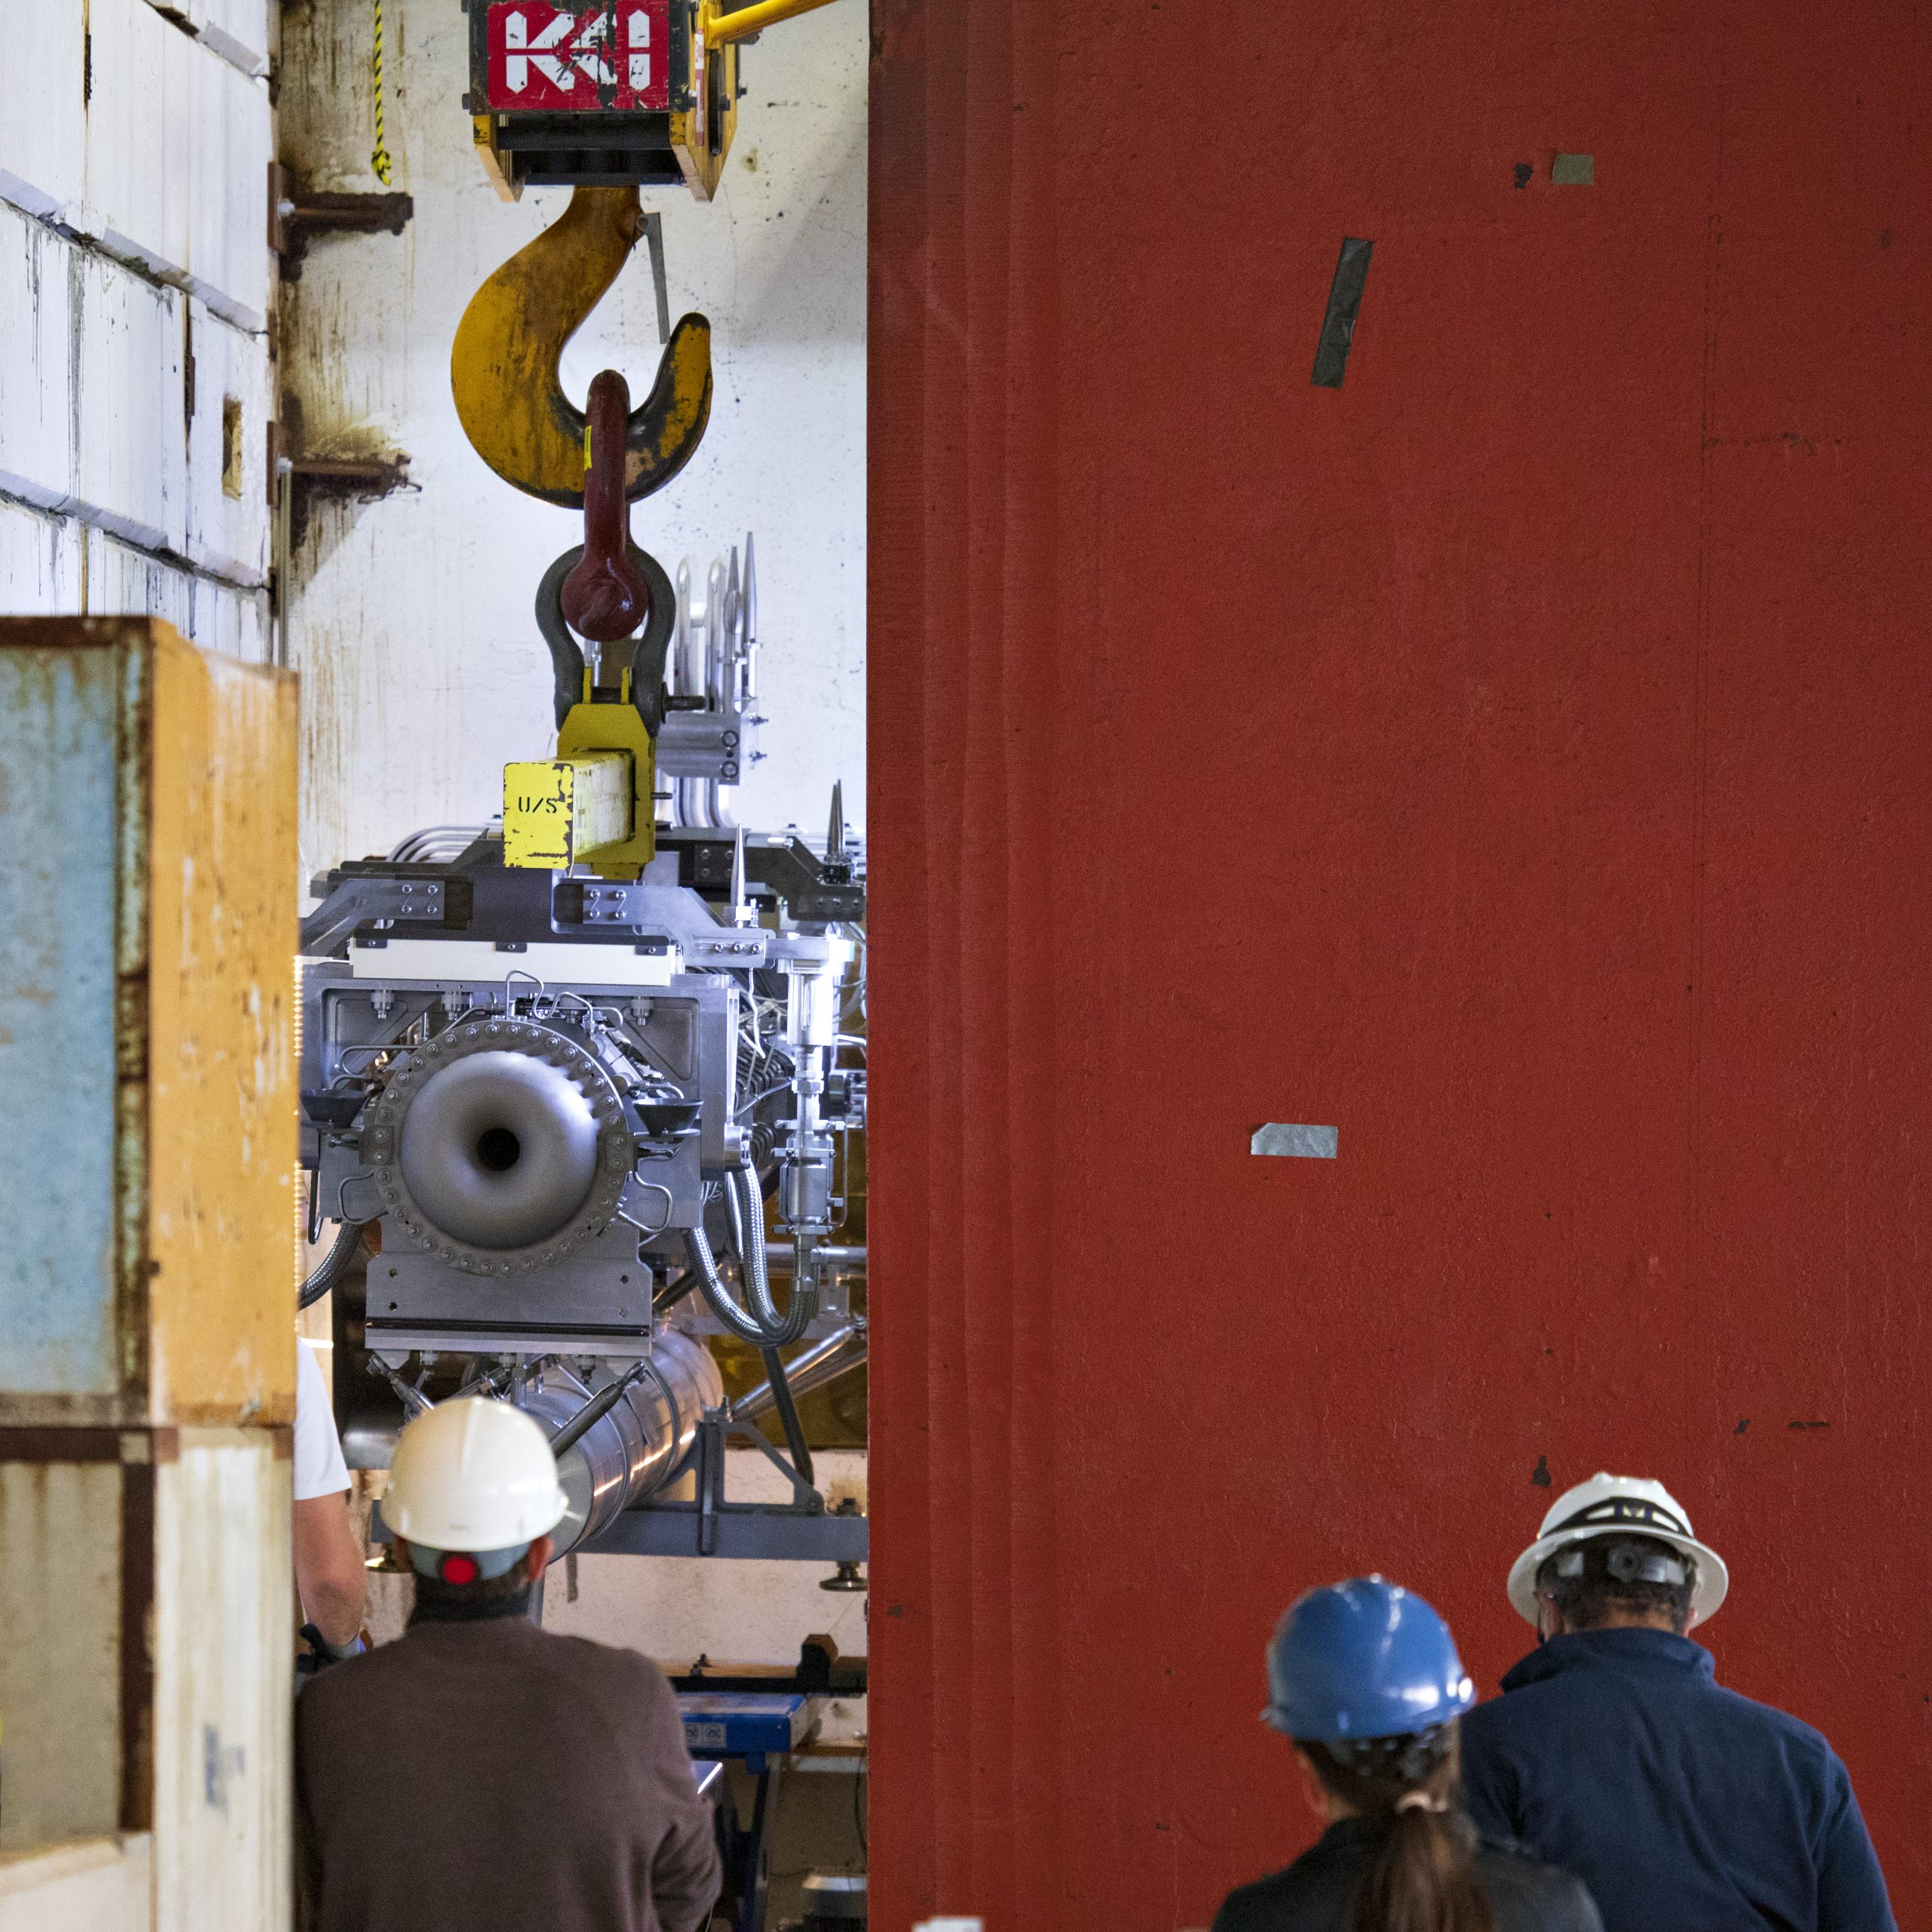 In the foreground, the backs of three people in hard hats staring at a large yellow hook holding a silver-colored piece of equipment. A large red wall is on the right half of the photo.